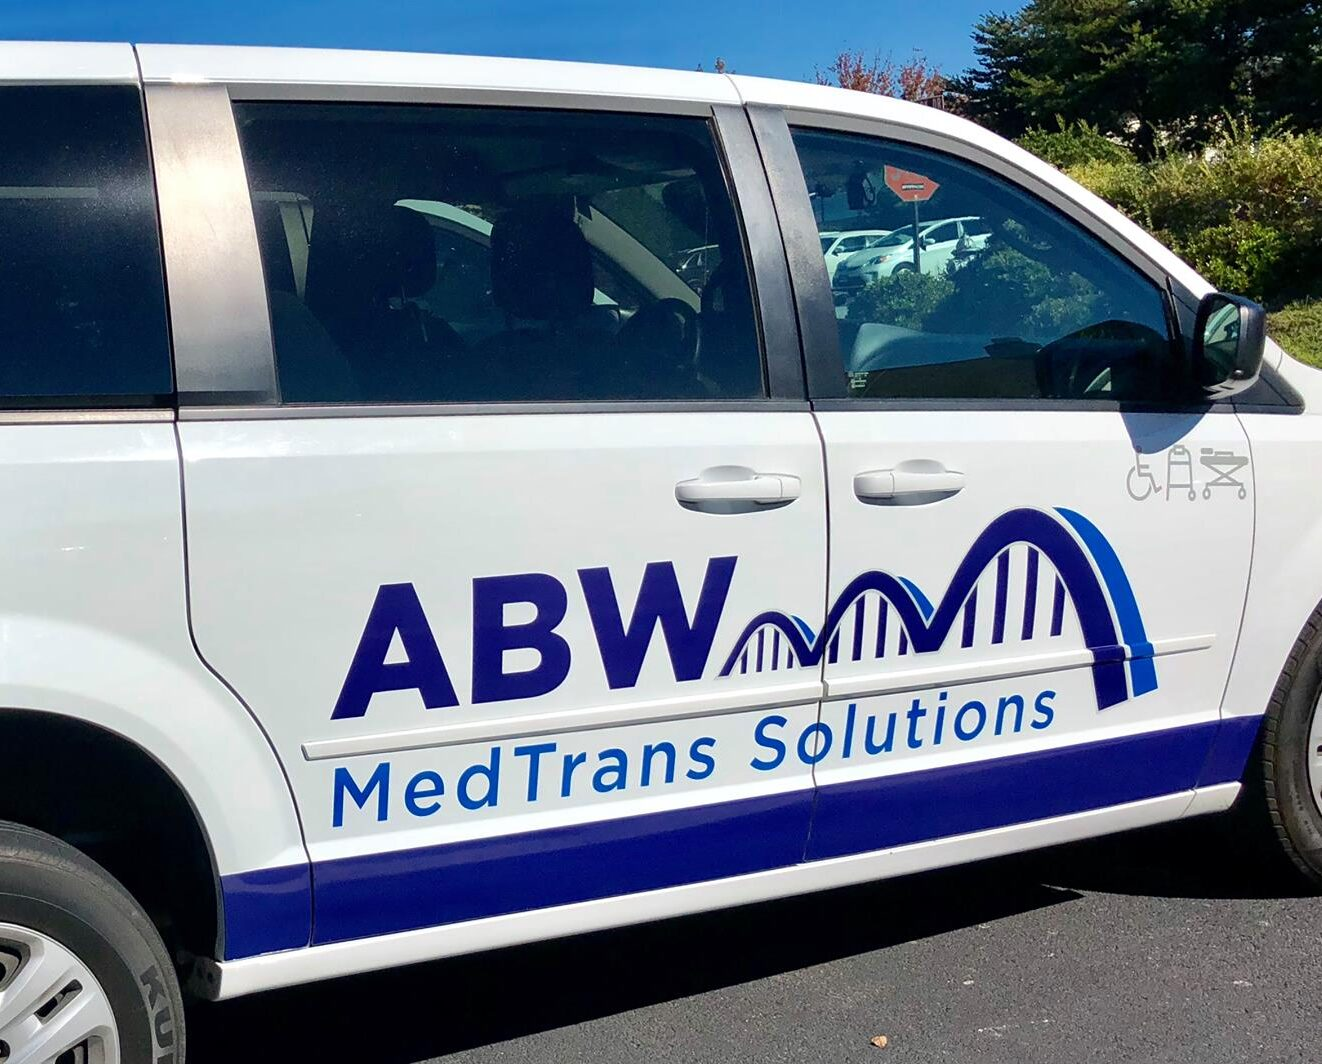 ABW MedTrans Solutions